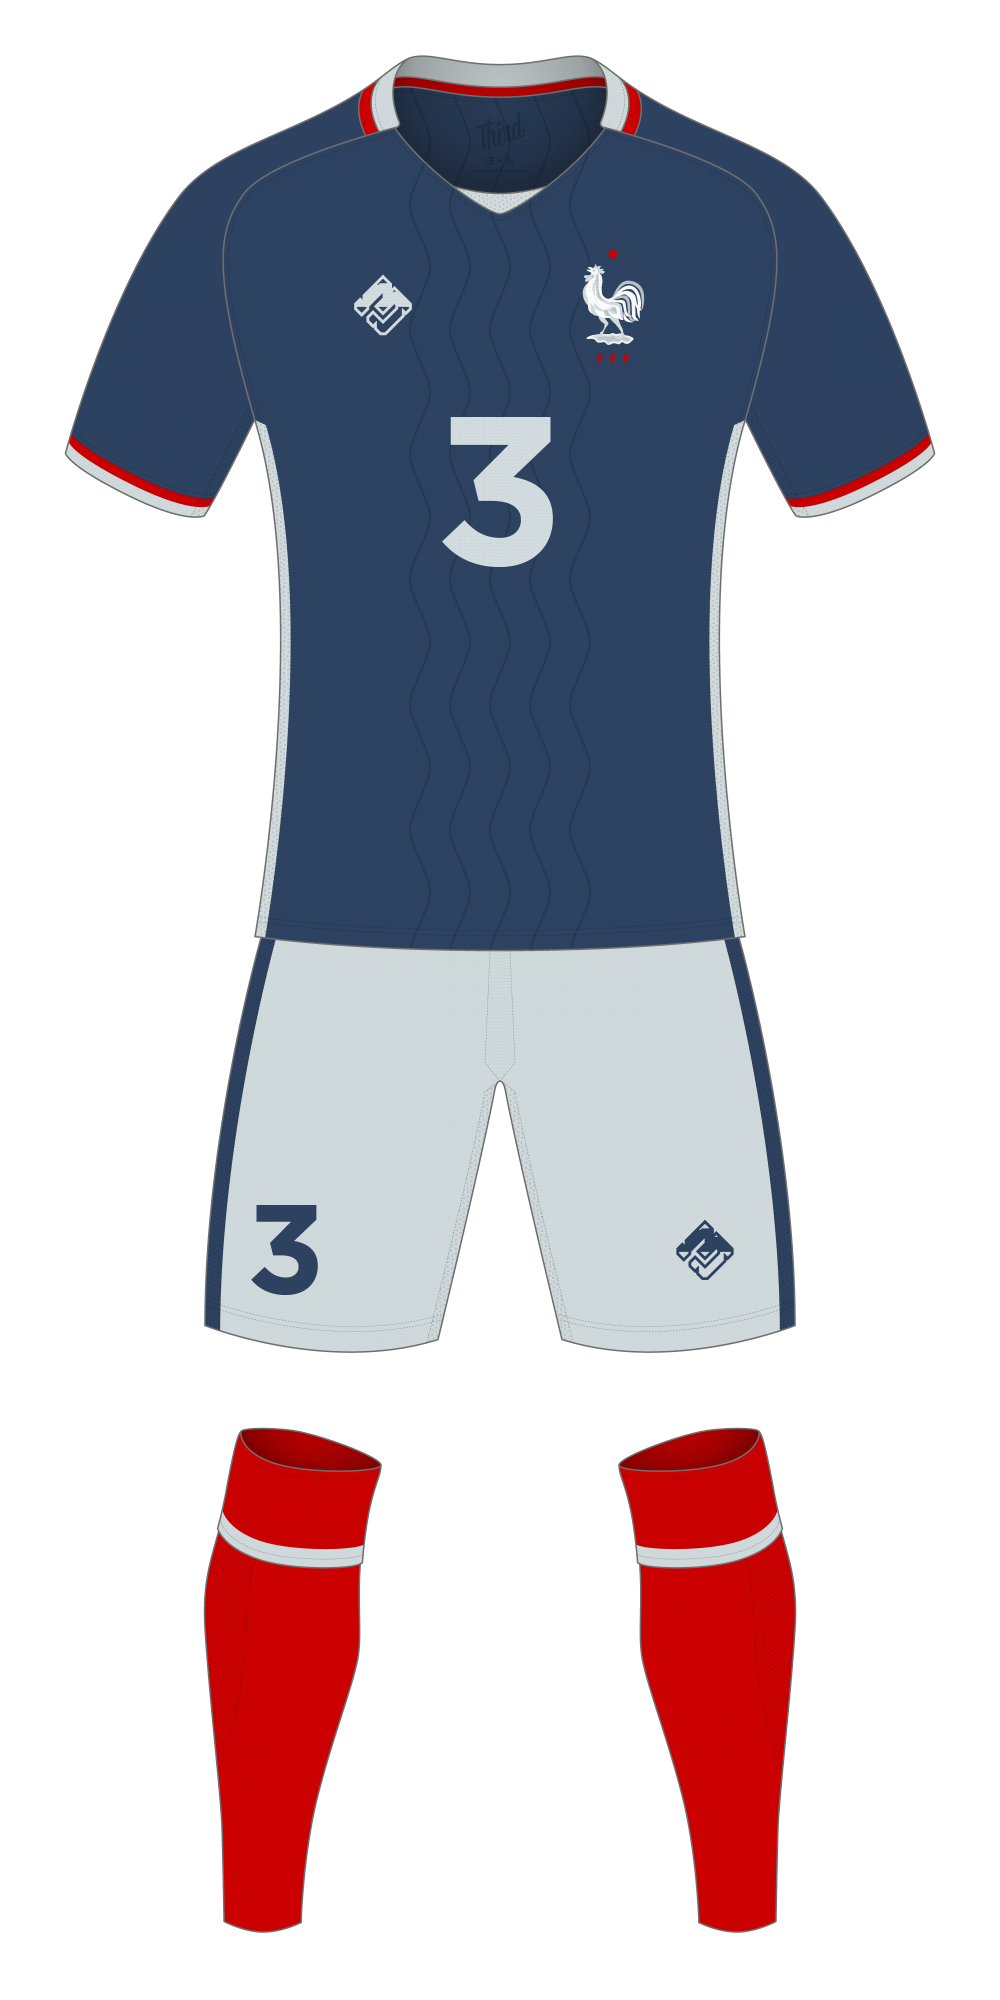 France World Cup 2018 concept